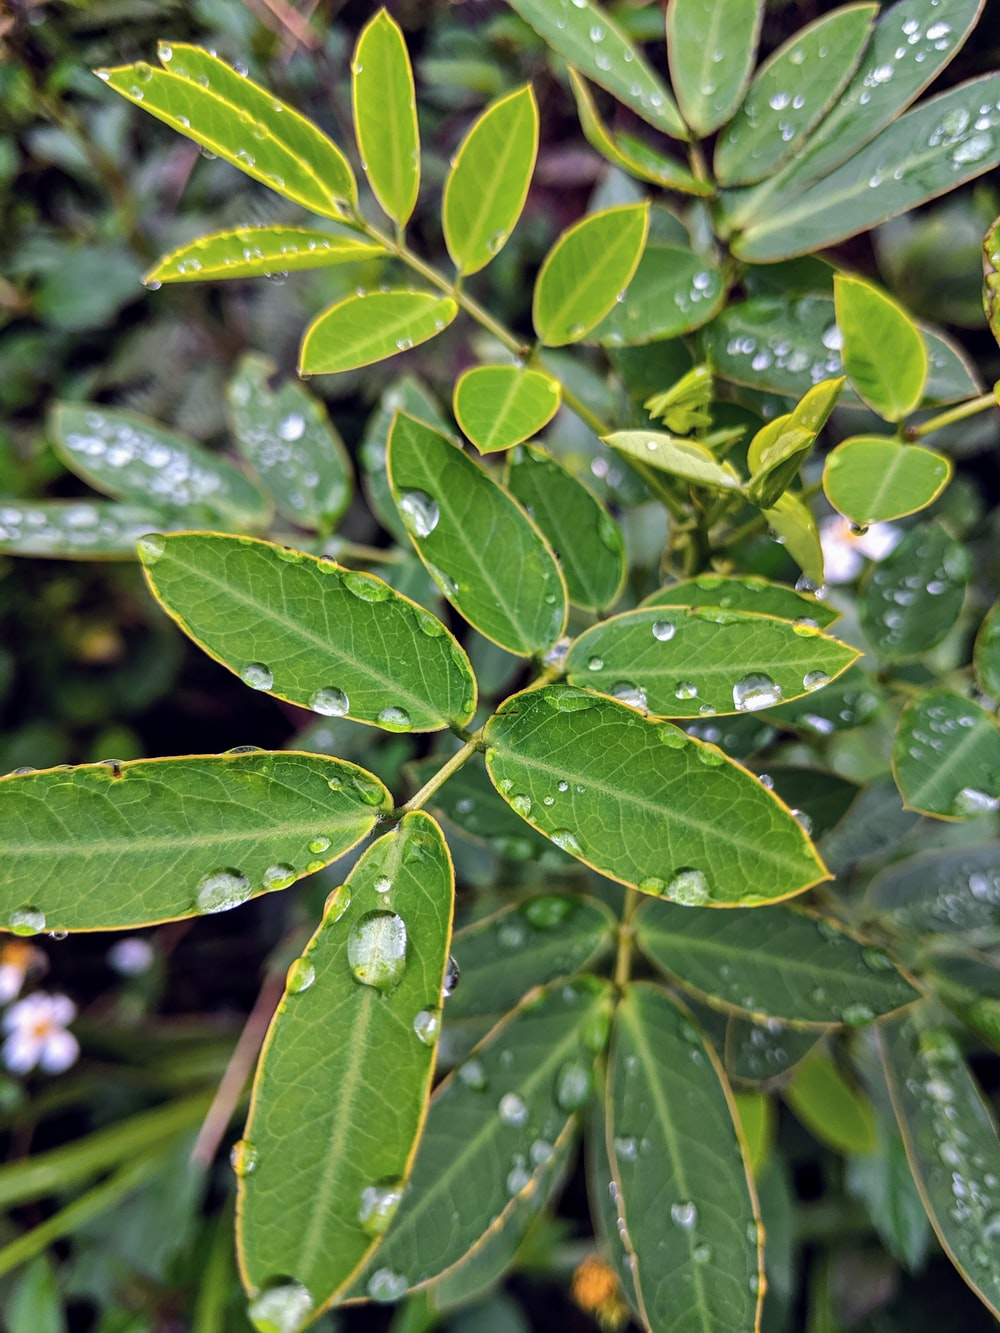 water dews on green leaf plant